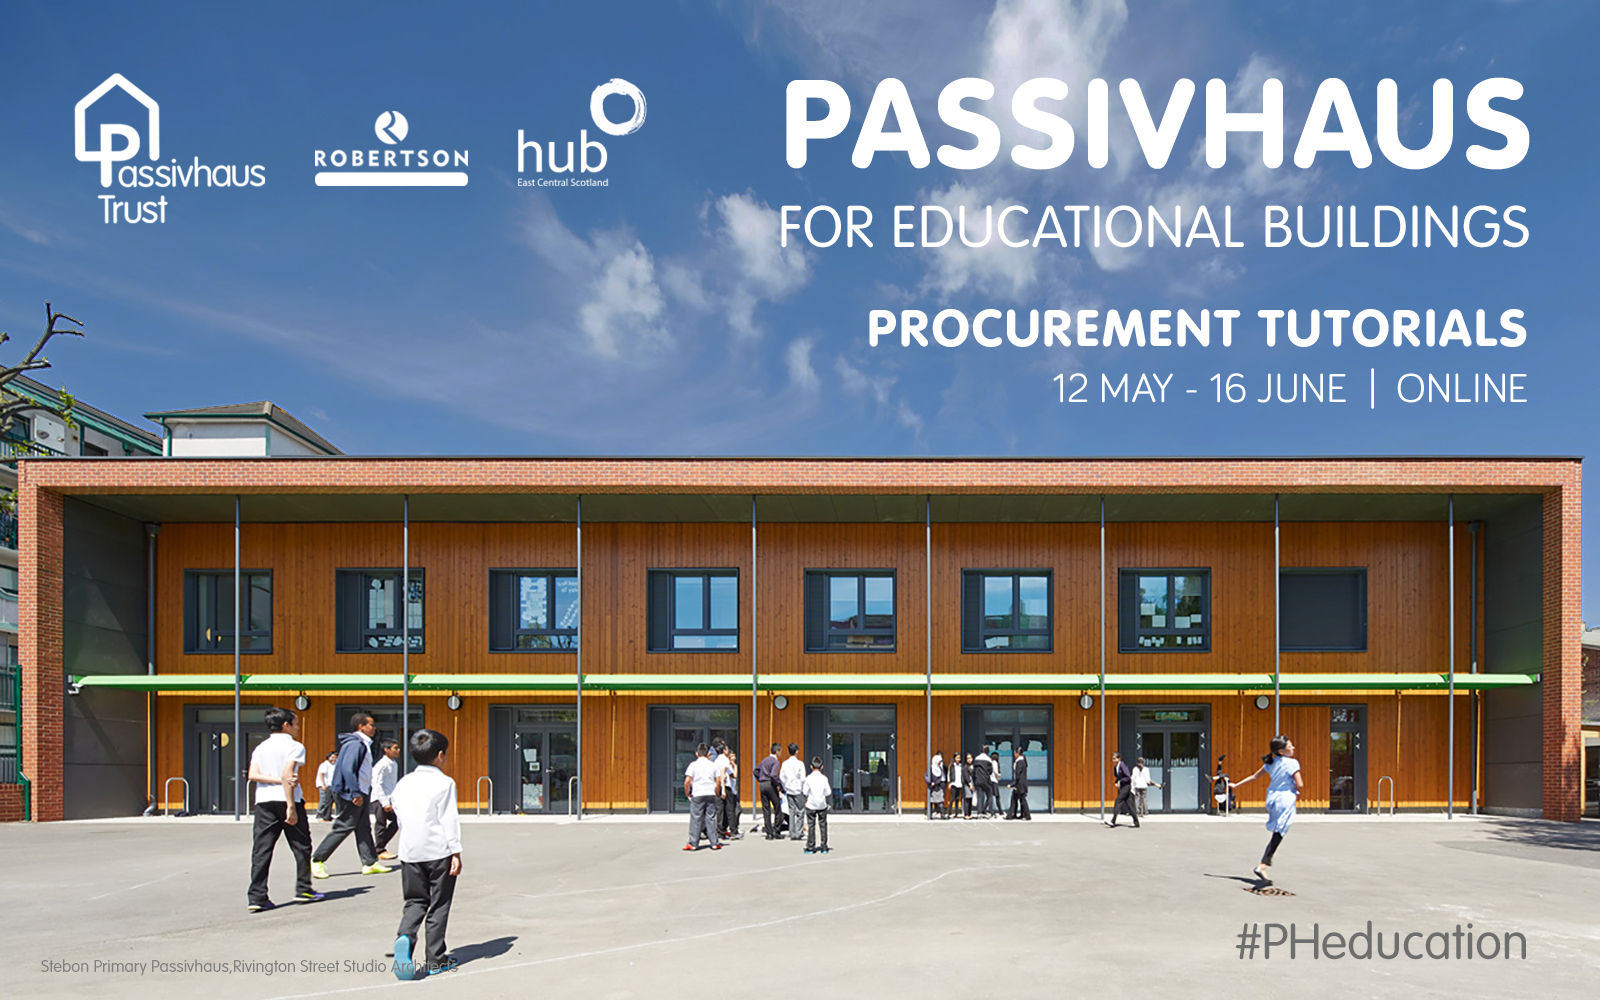 Passivhaus for Educational Buildings: Procurement Tutorials